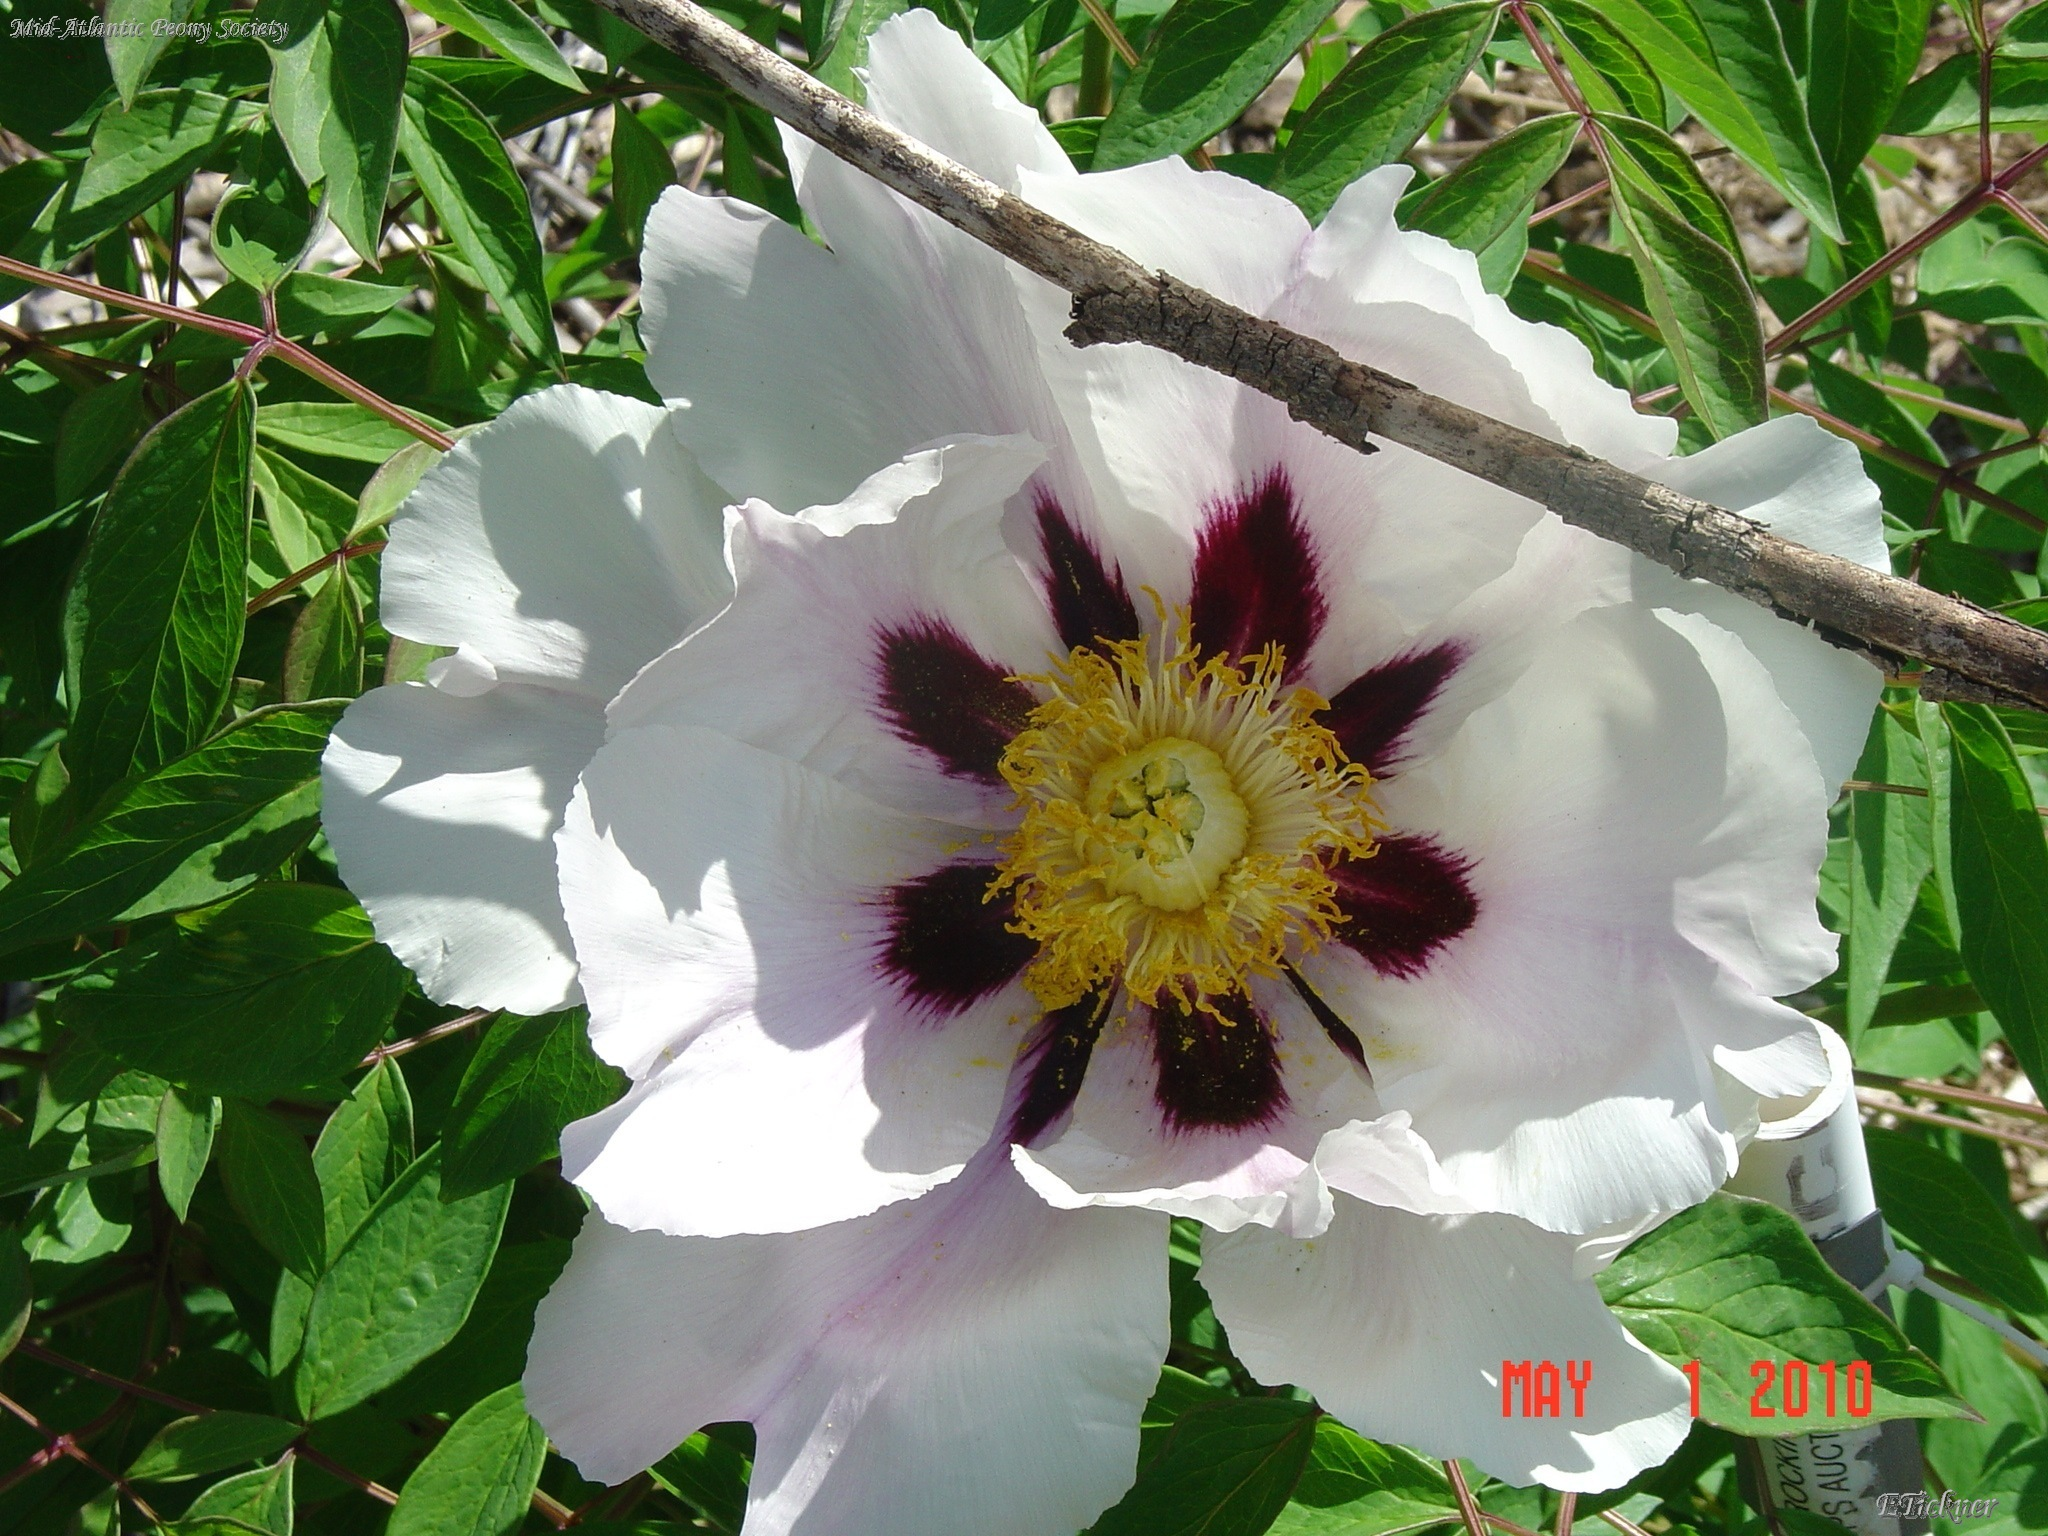 P. rockii sub linyanshani tree peony with a white flower